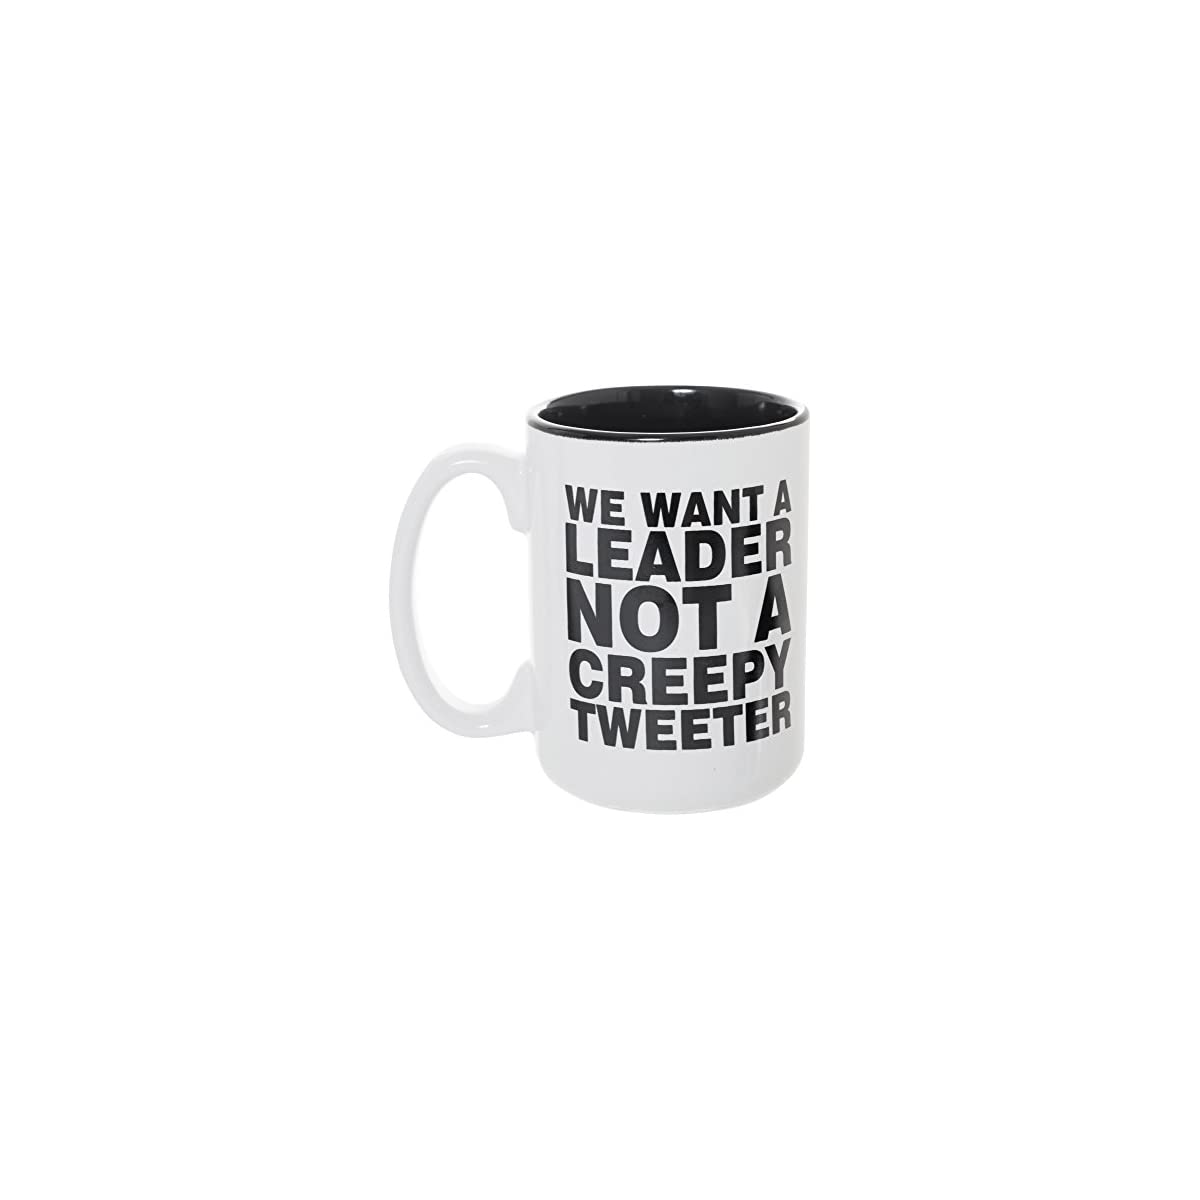 We Want A Leader Not A Creepy Tweeter 15 oz Deluxe Large Double-Sided Anti-Trump Mug